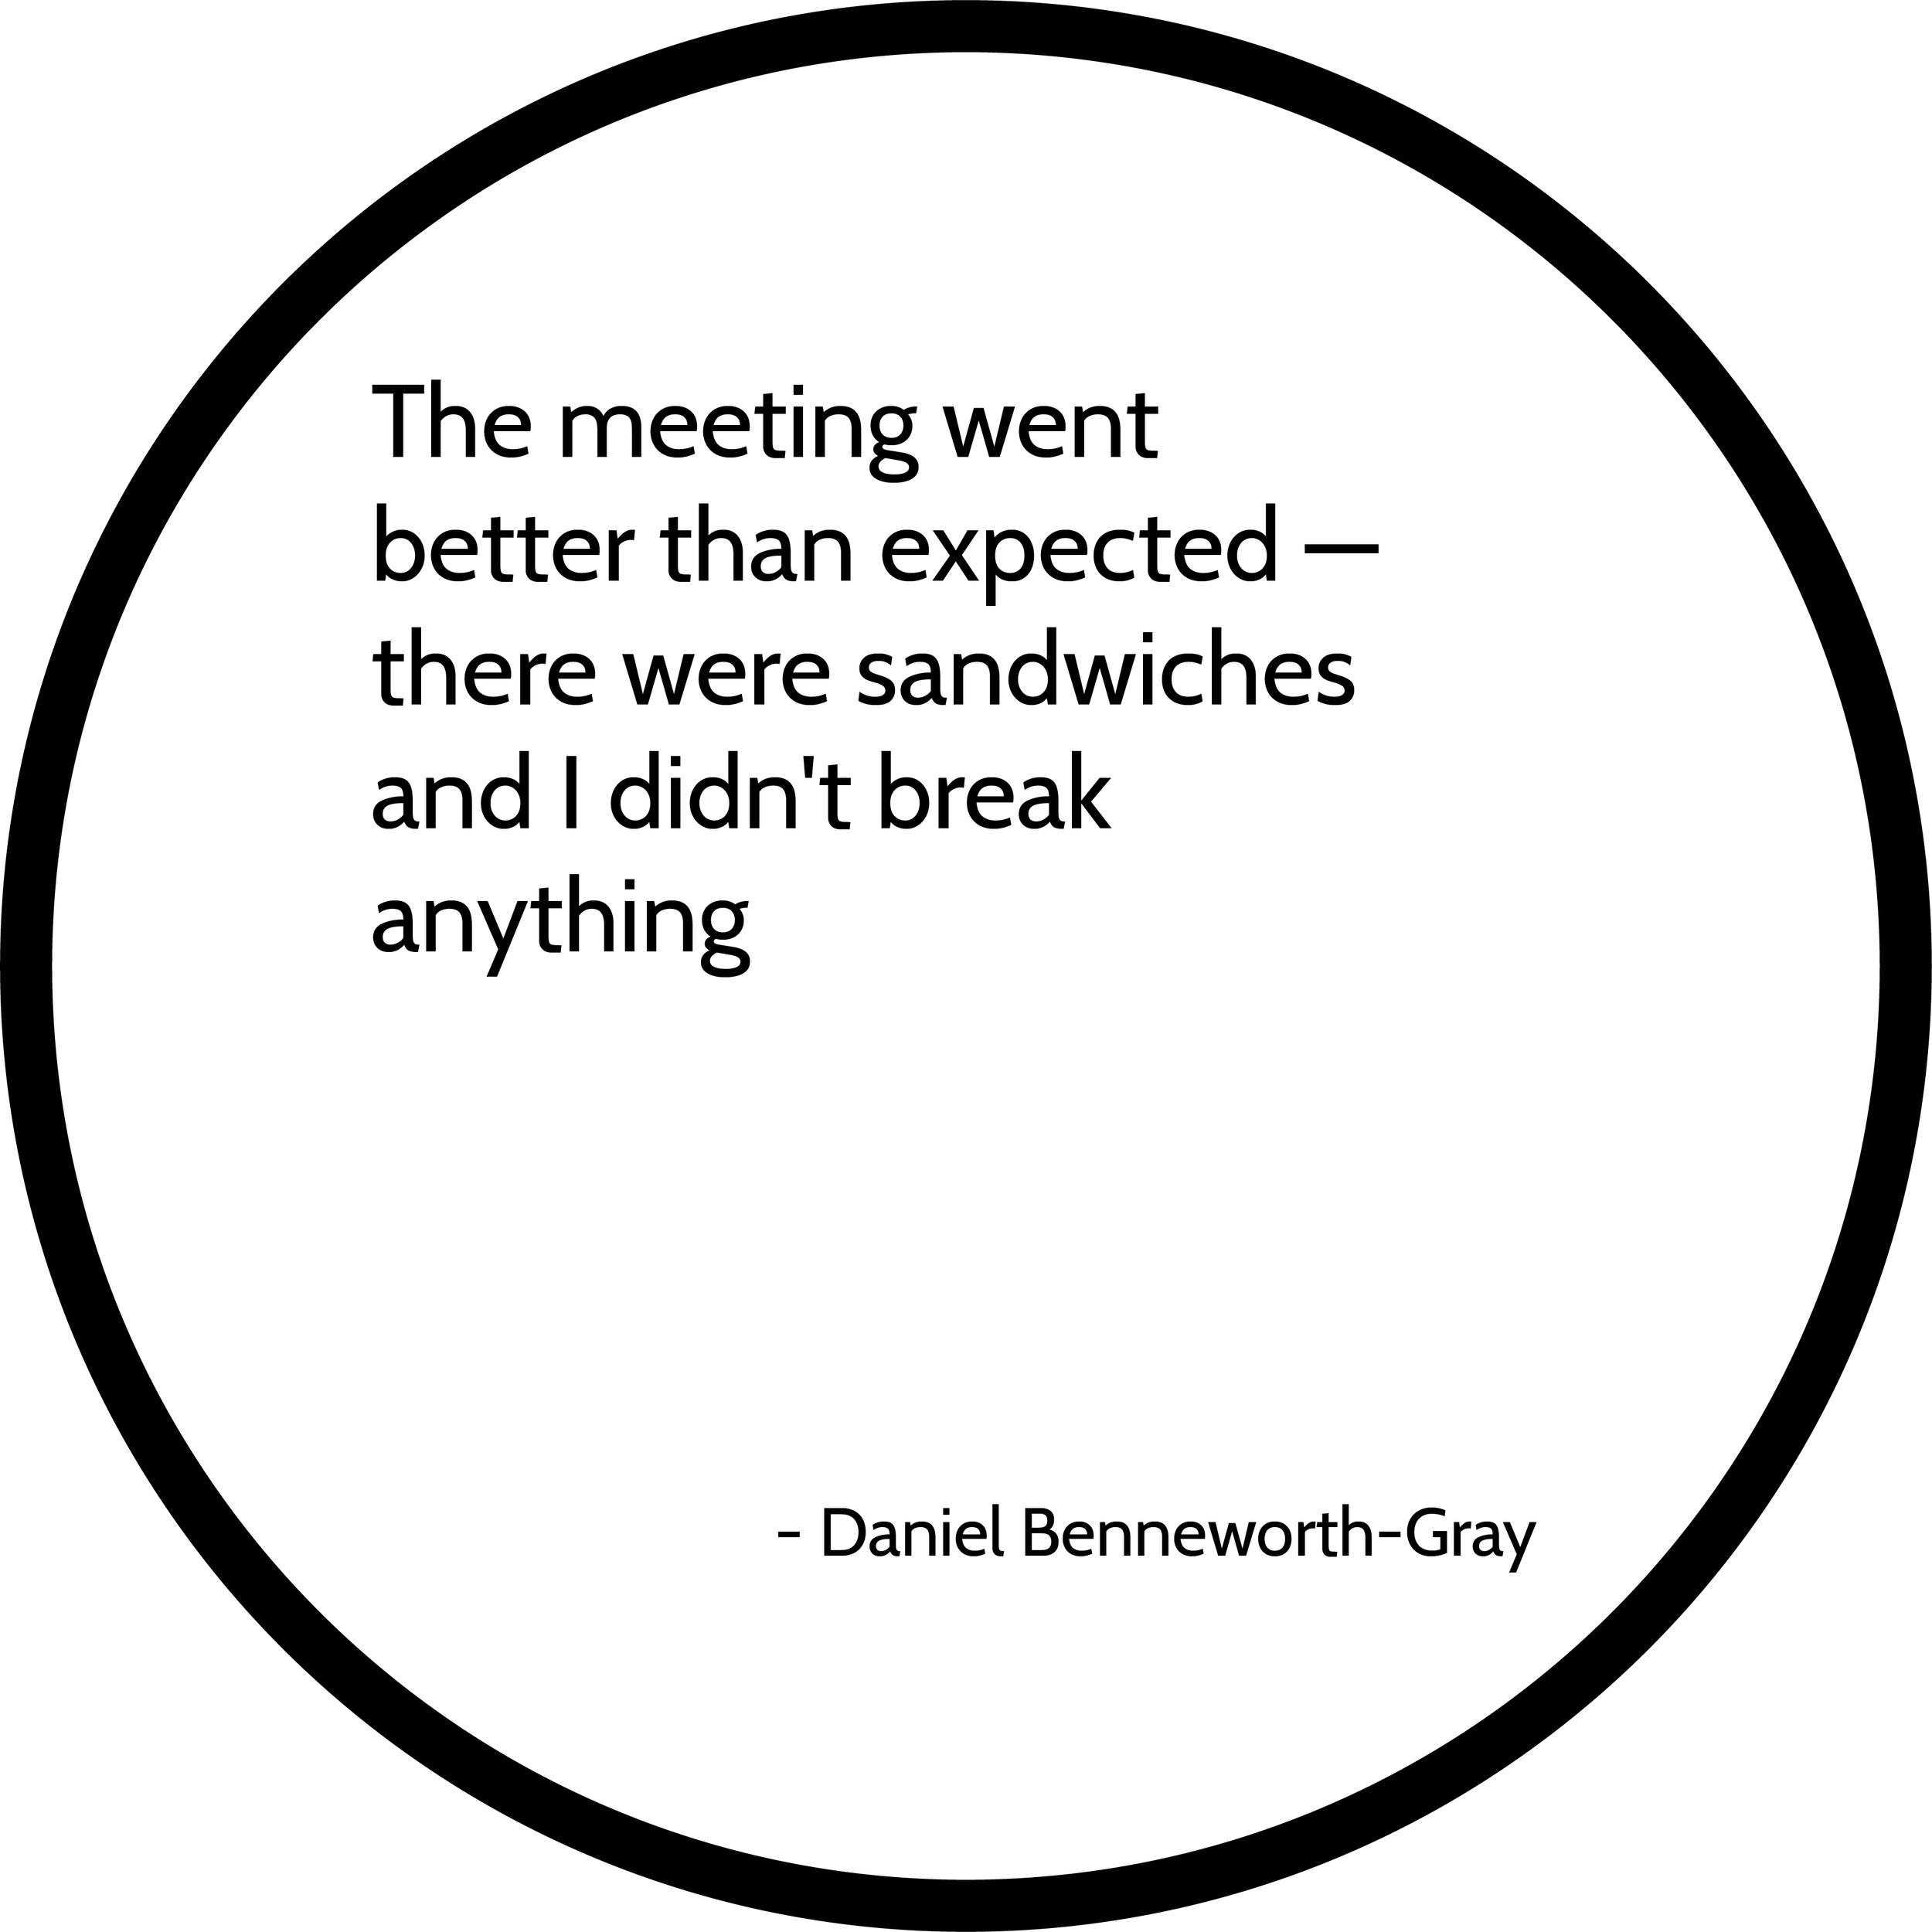 Daniel Benneworth-Gray quote 2019.04.24.png